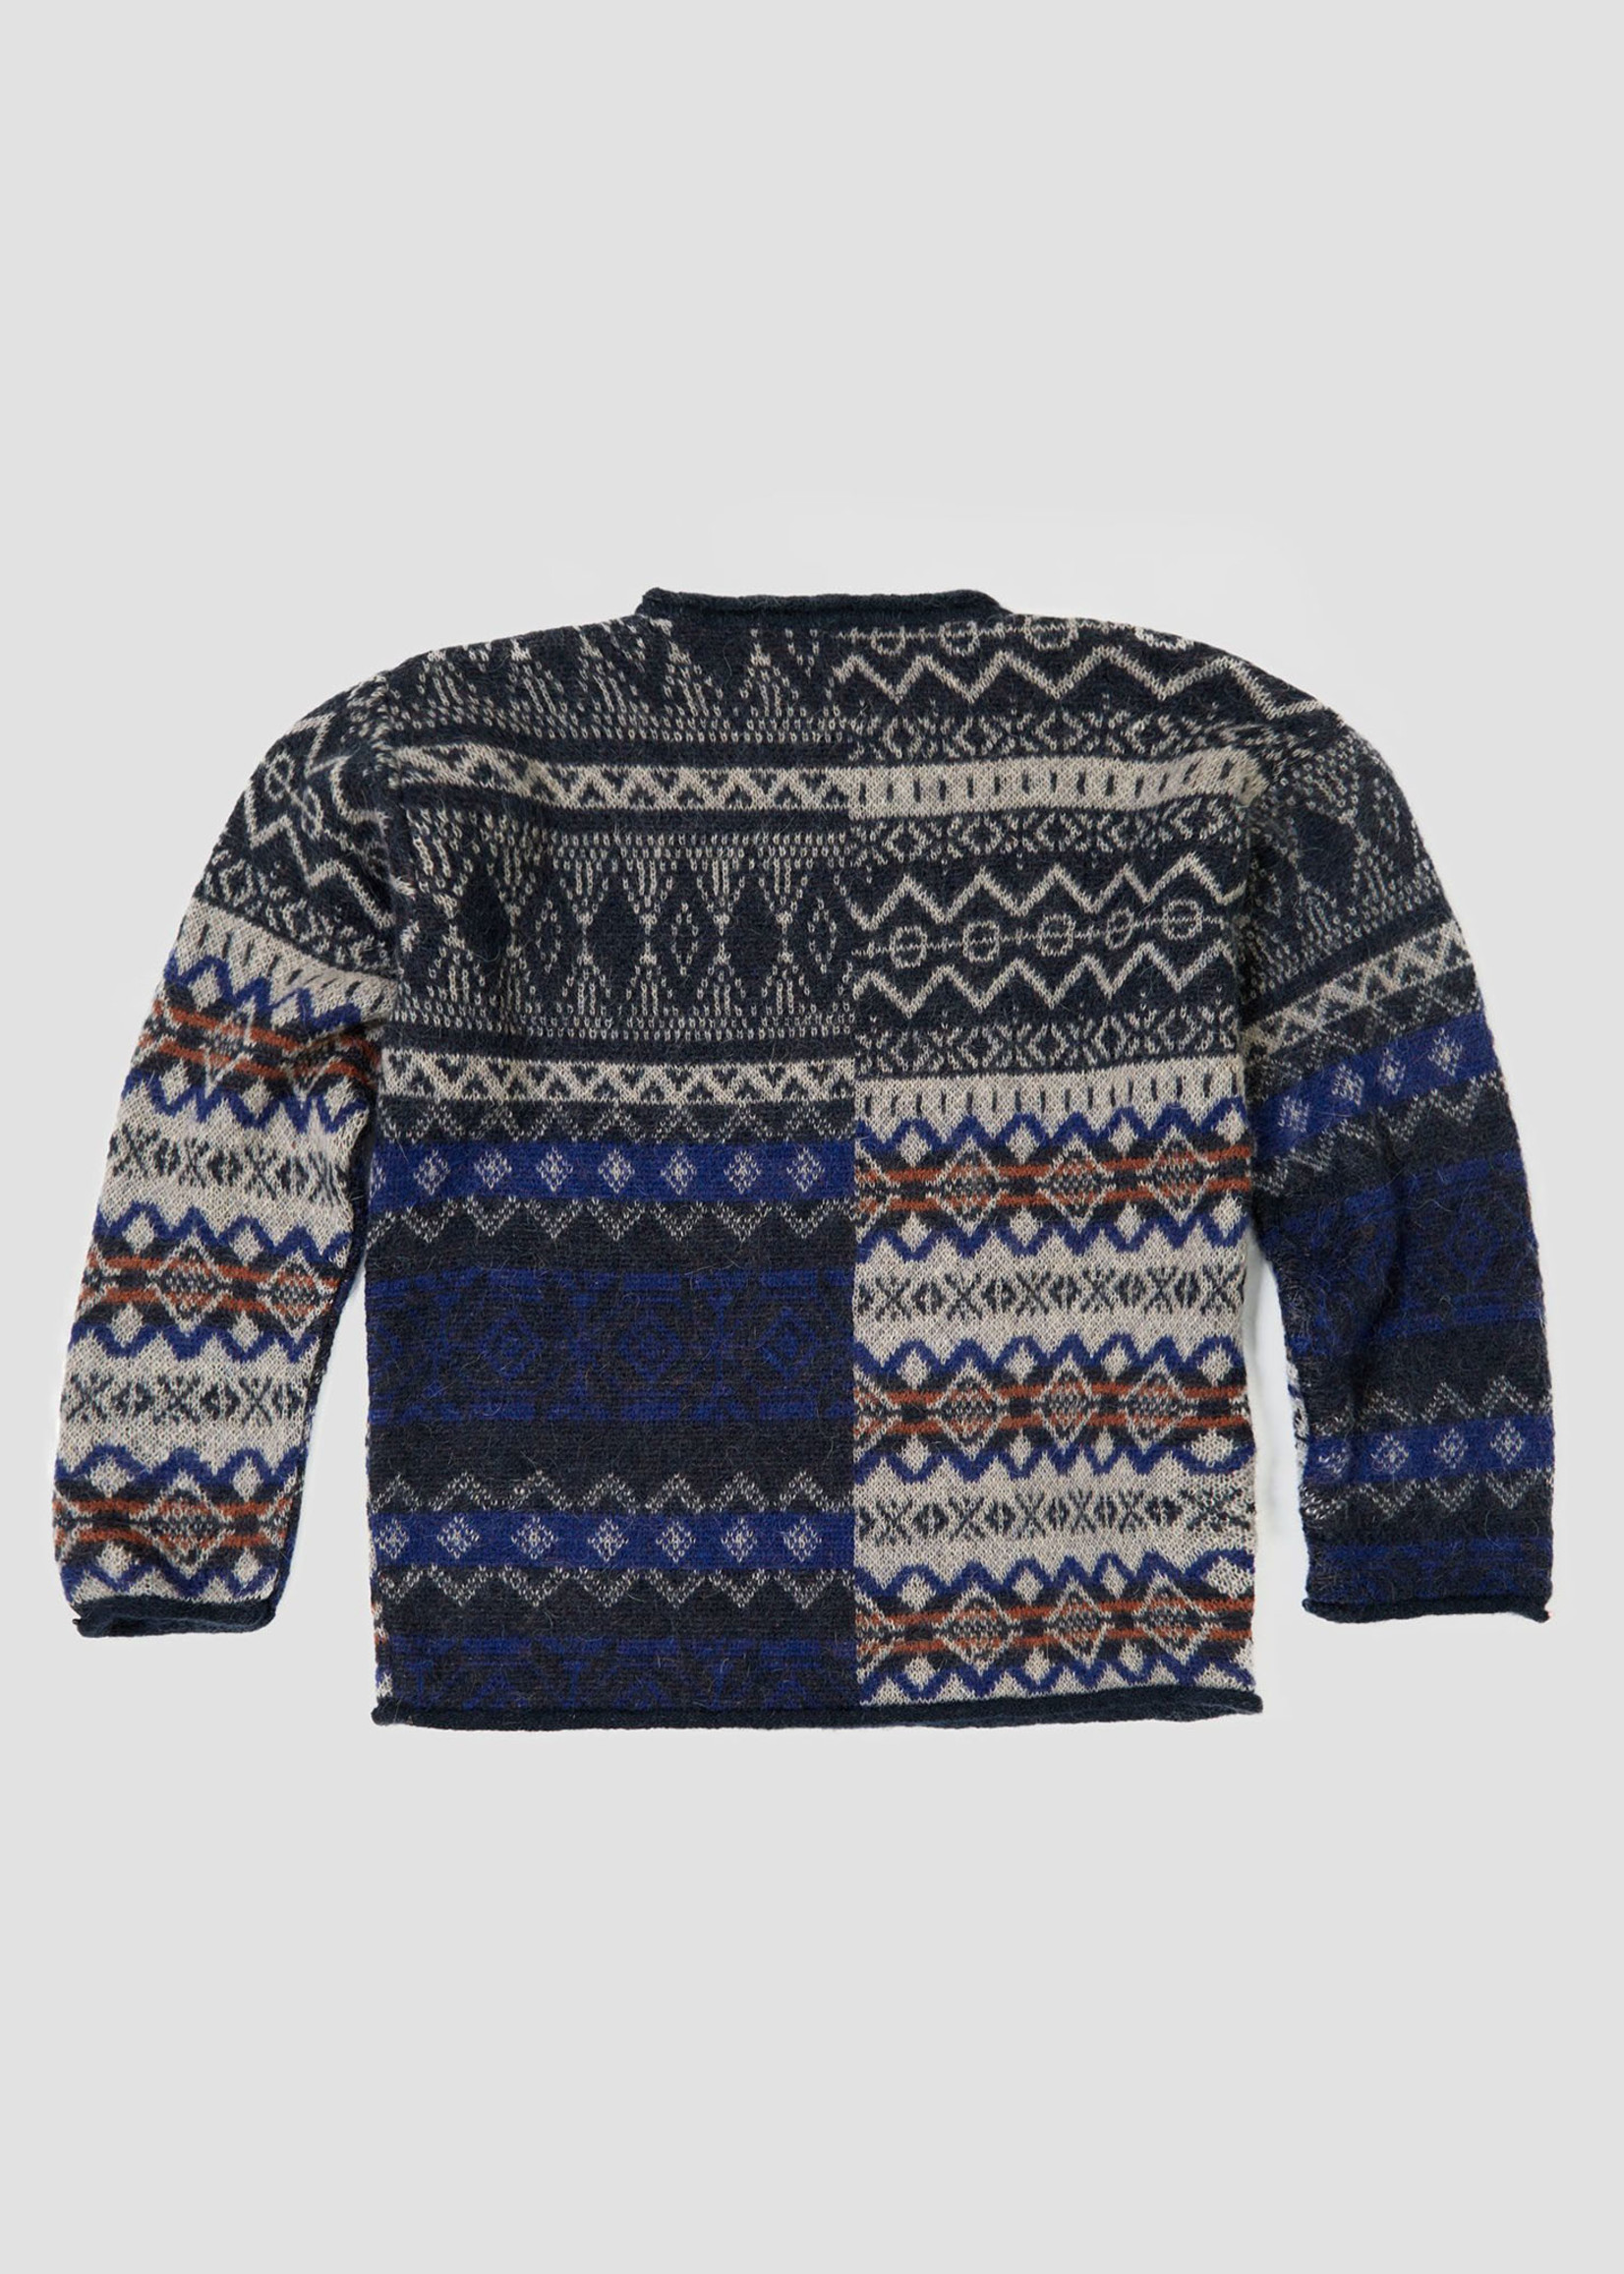 "GarbStore Garbstore ""The English Difference"" Crewneck Sweater Tan Mohair Fair Isle"